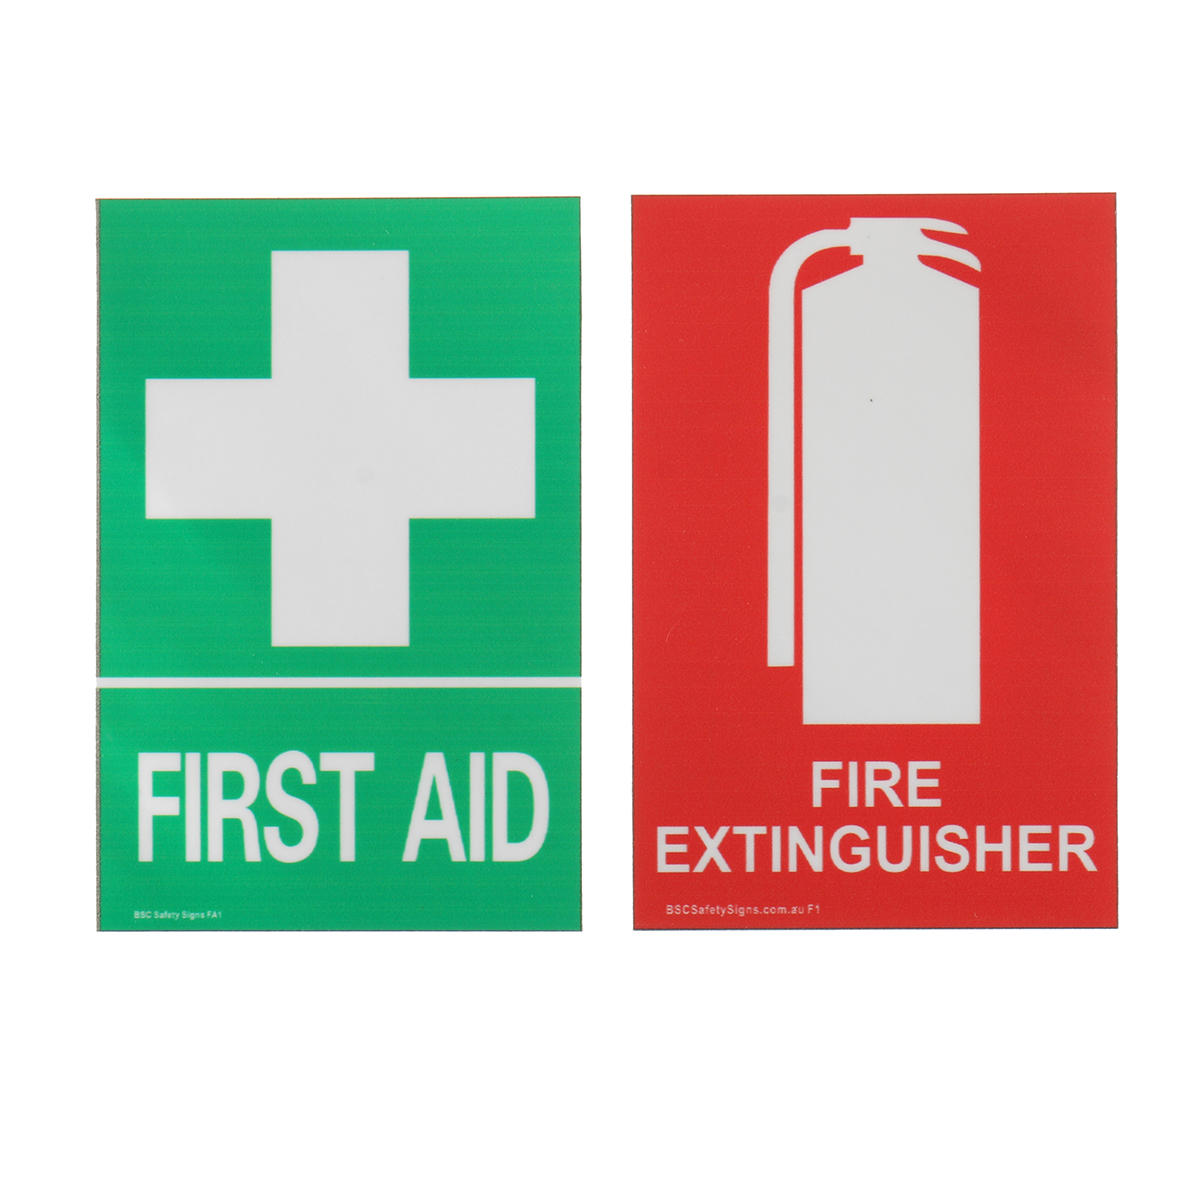 100x66mm First Aid Fire Extinguisher PVC Sticker Sign Decal Set For Outdoor Safety And Survival Emergency Urgent